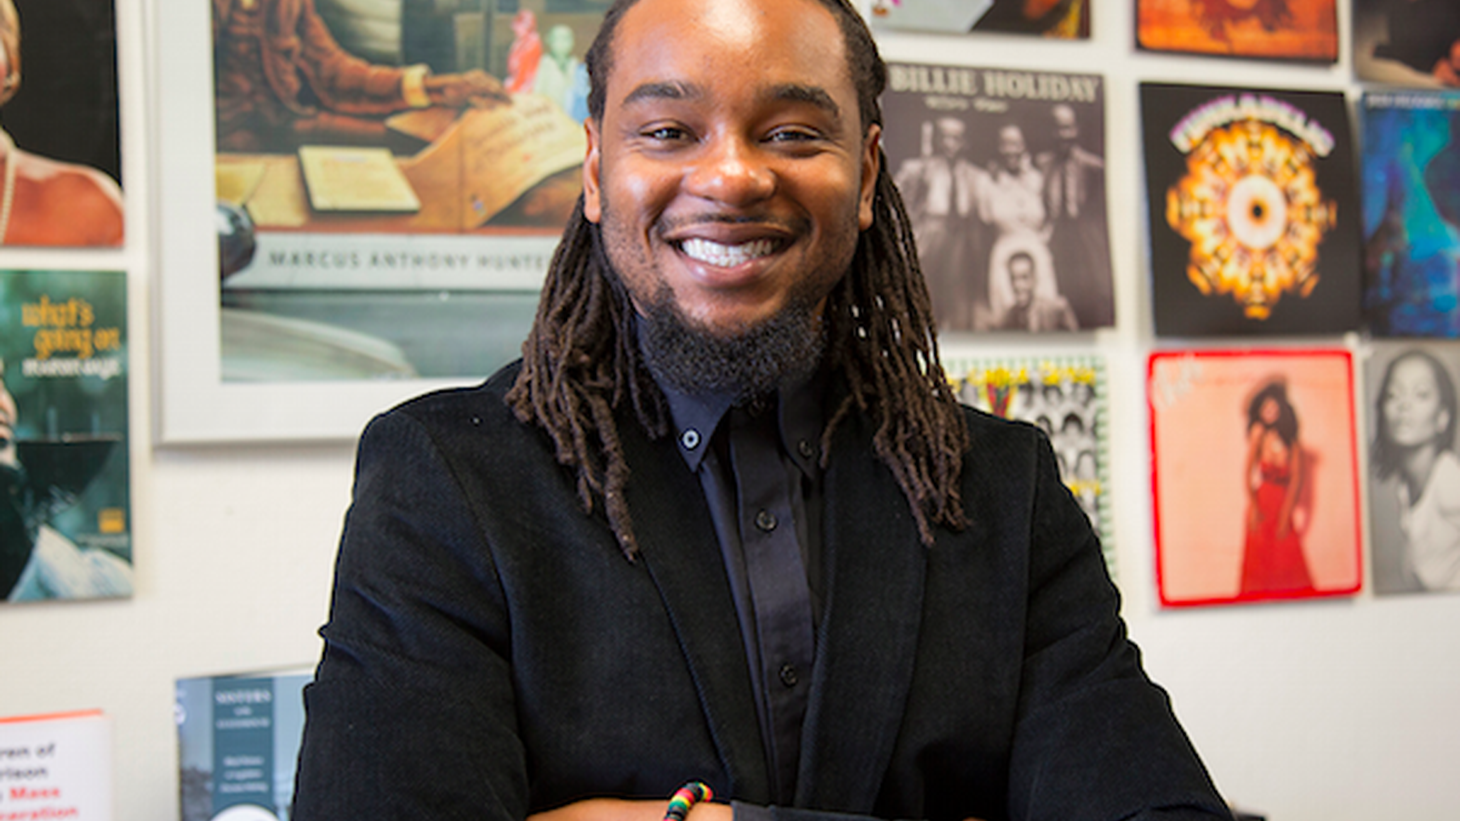 Chair of African American Studies at UCLA, Marcus Anthony Hunter, talks to Chery Glaser about Martin Luther King, Jr. and the Civil Rights Movement.